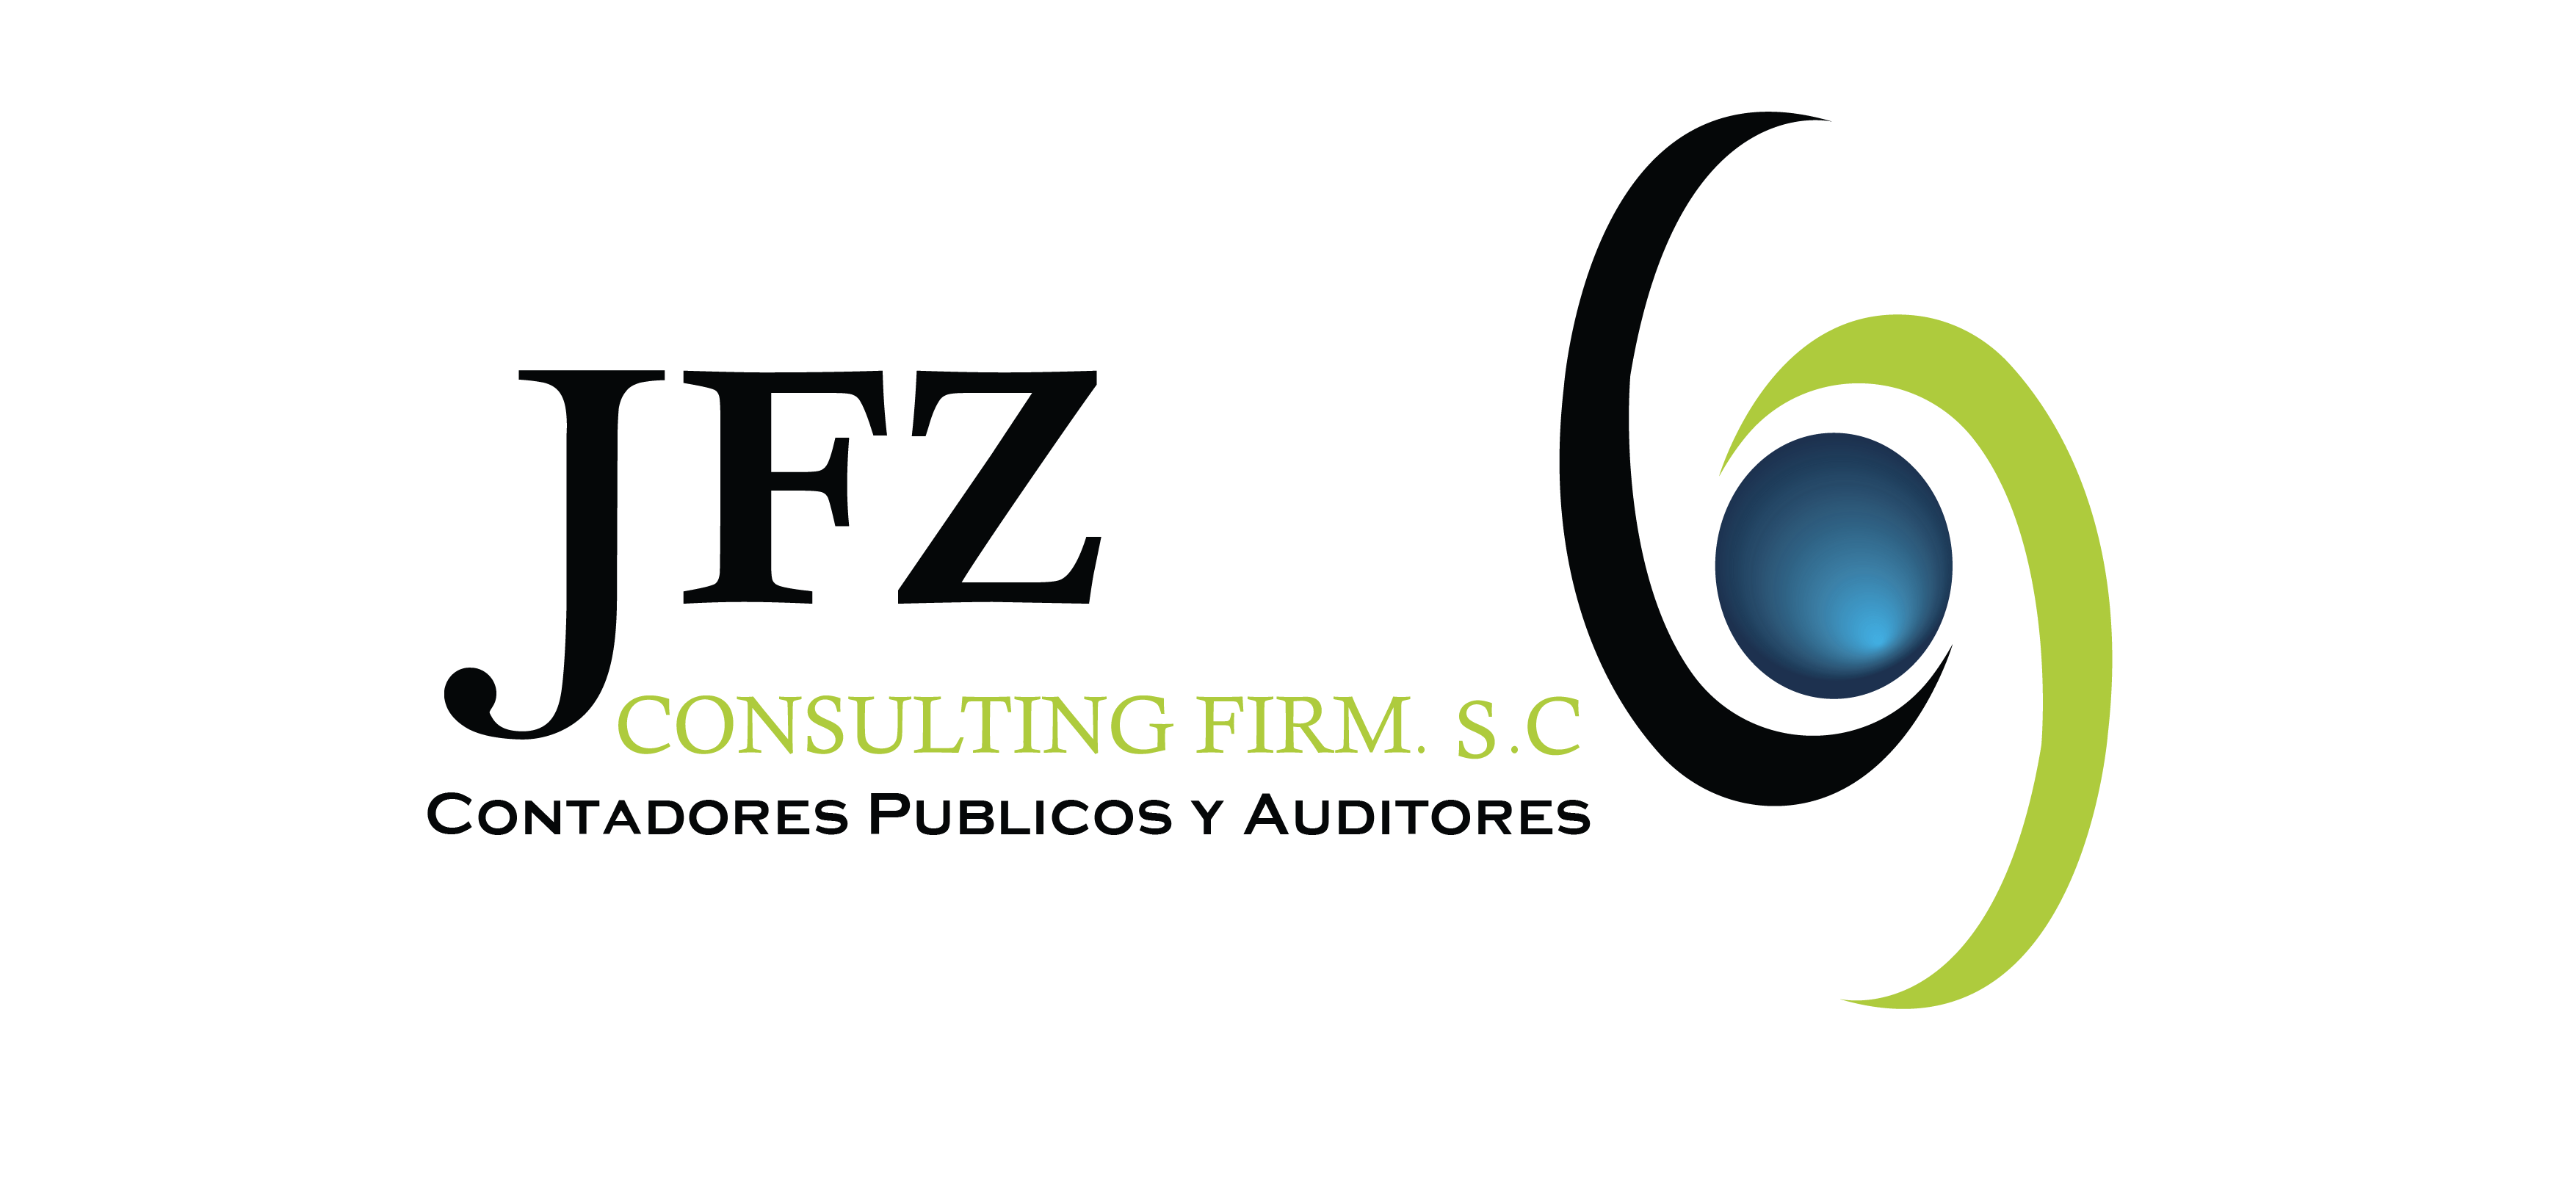 JFZ Consulting Firm S.C.